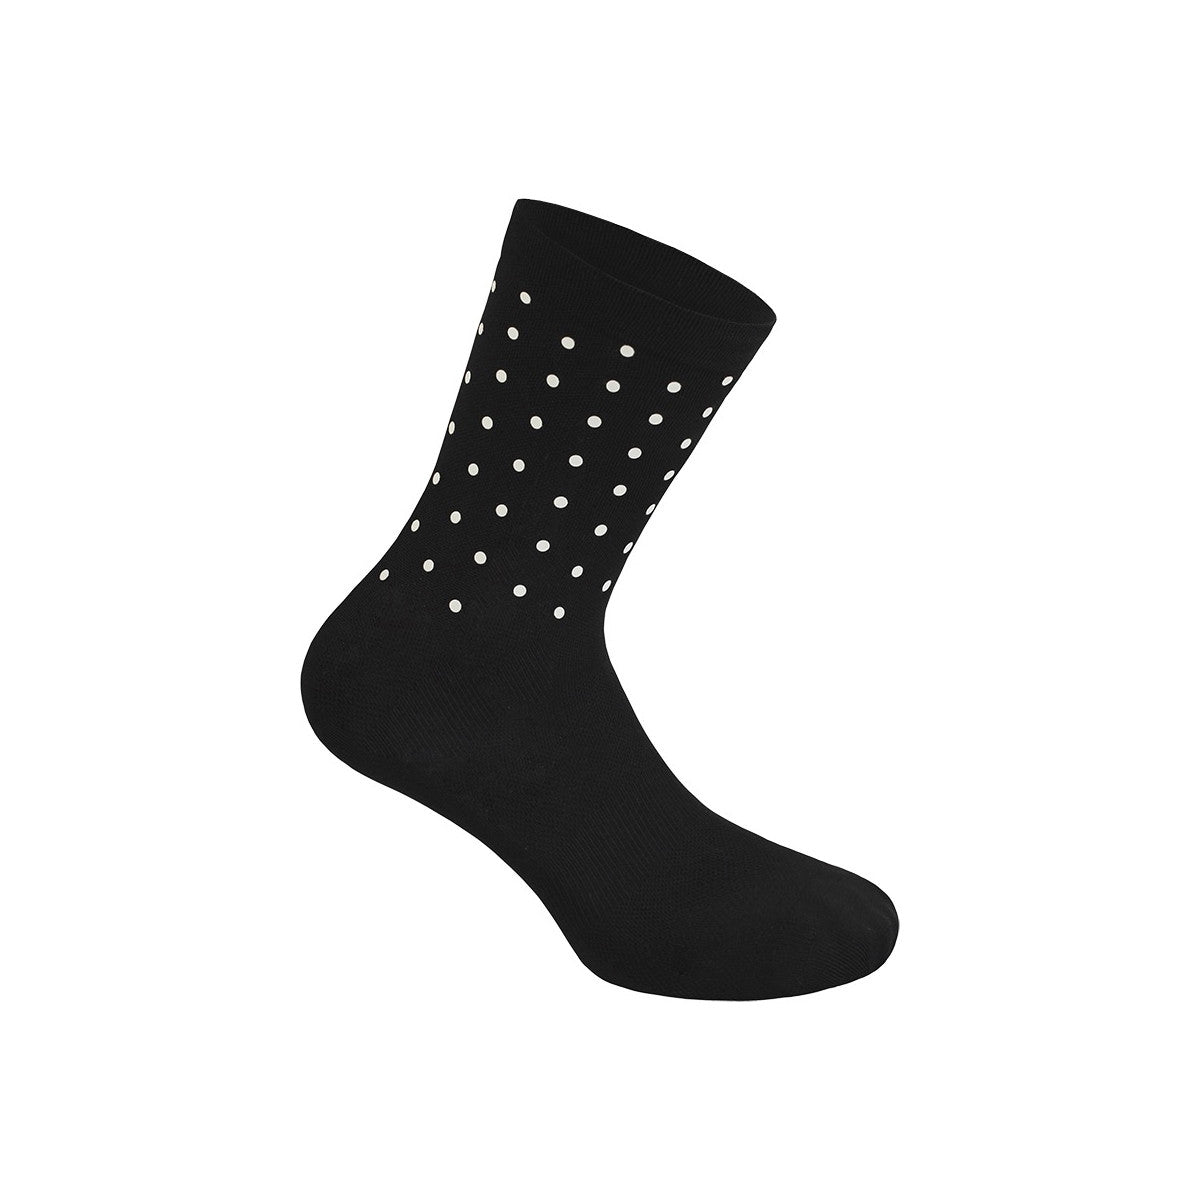 Reflective Twinkle Socks